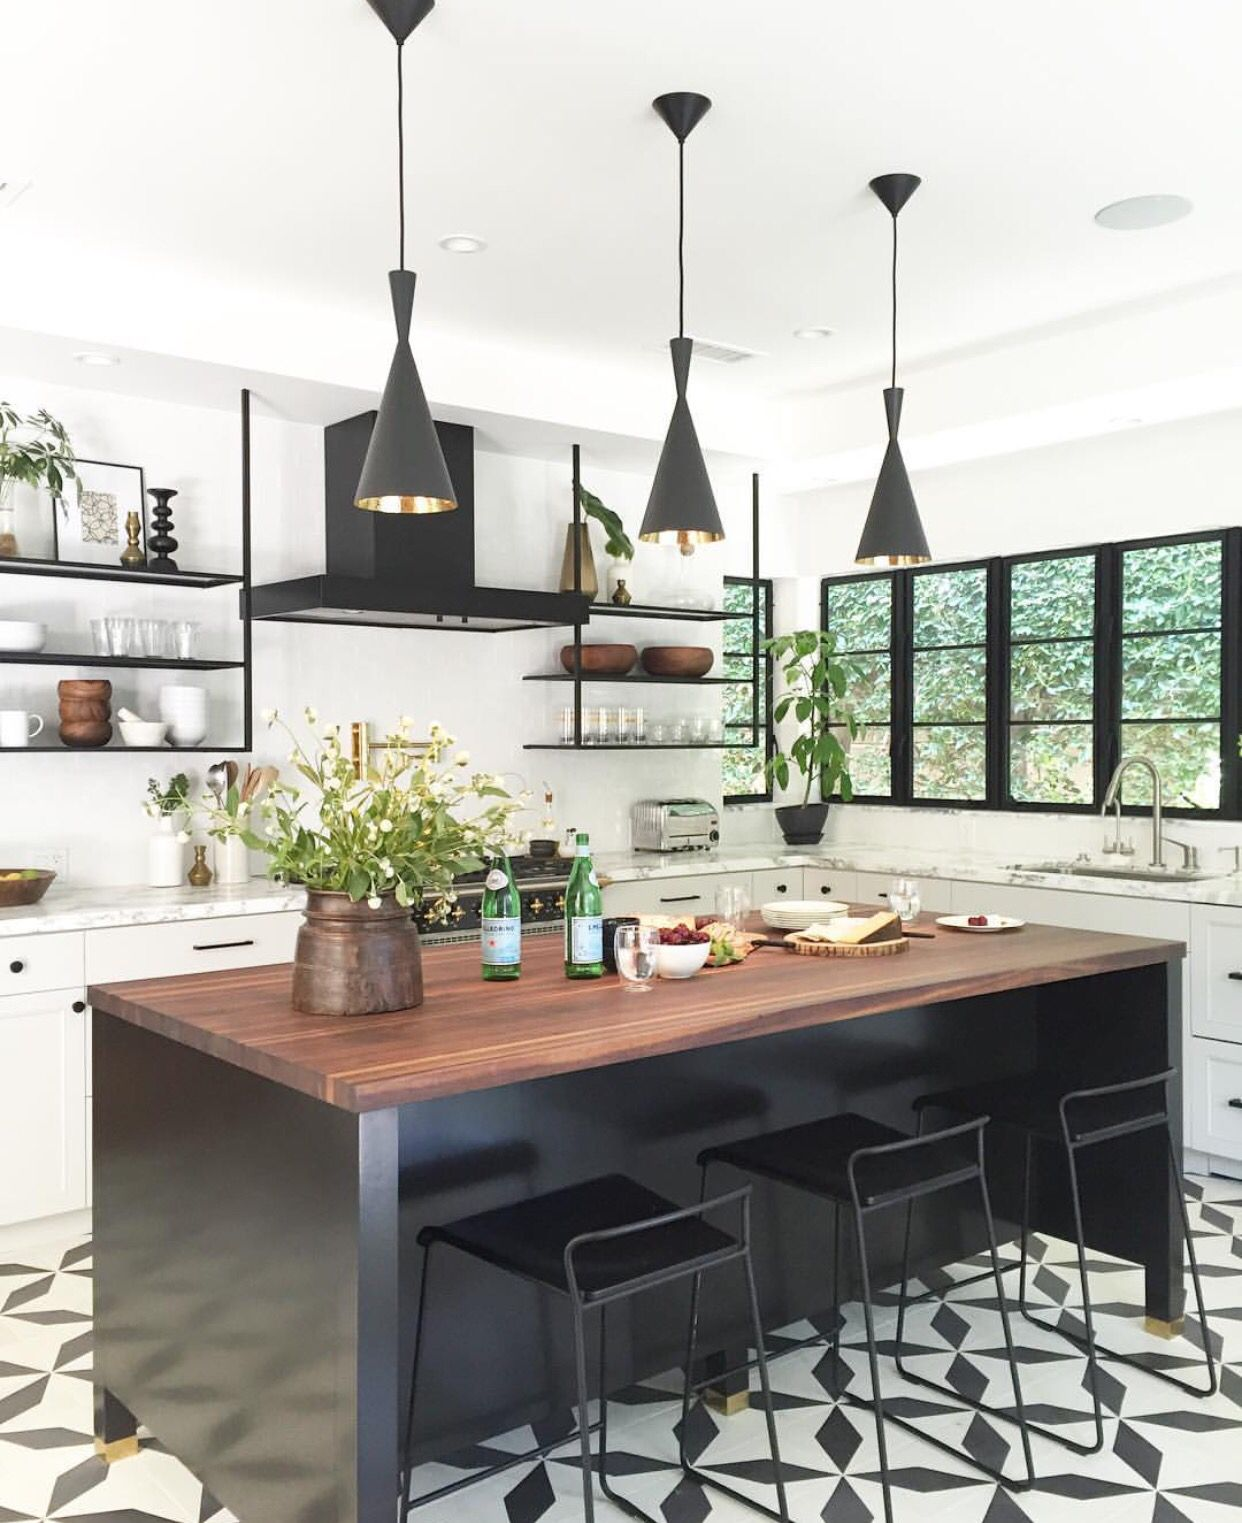 Kitchen With Black Tiles: Pin By Kristen Weil On Modern Farmhouse